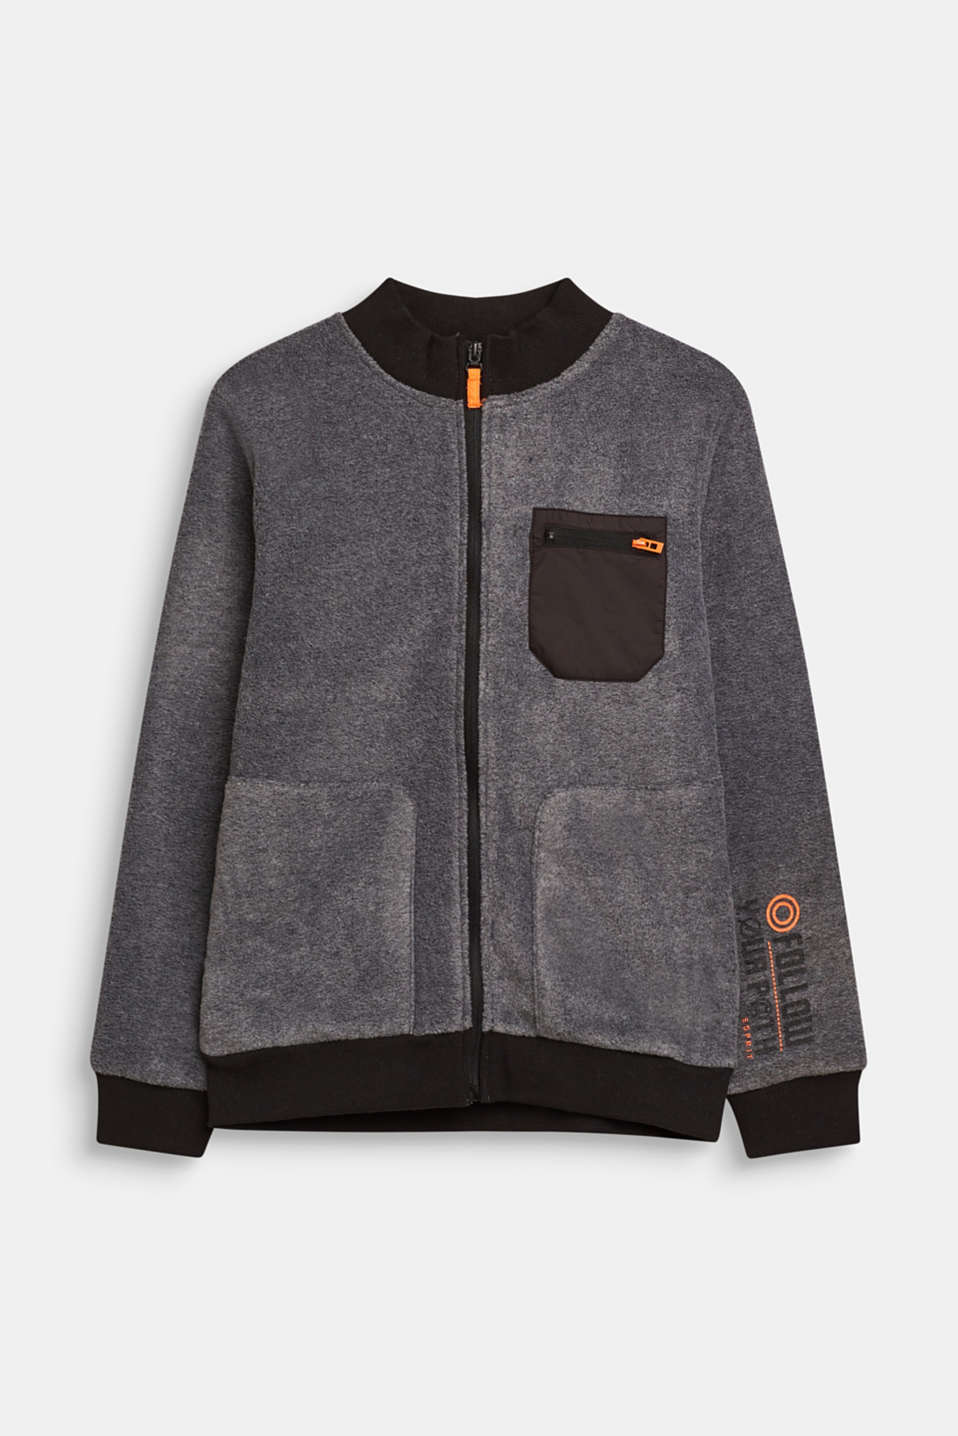 Esprit - Fleece vest in bomberstijl